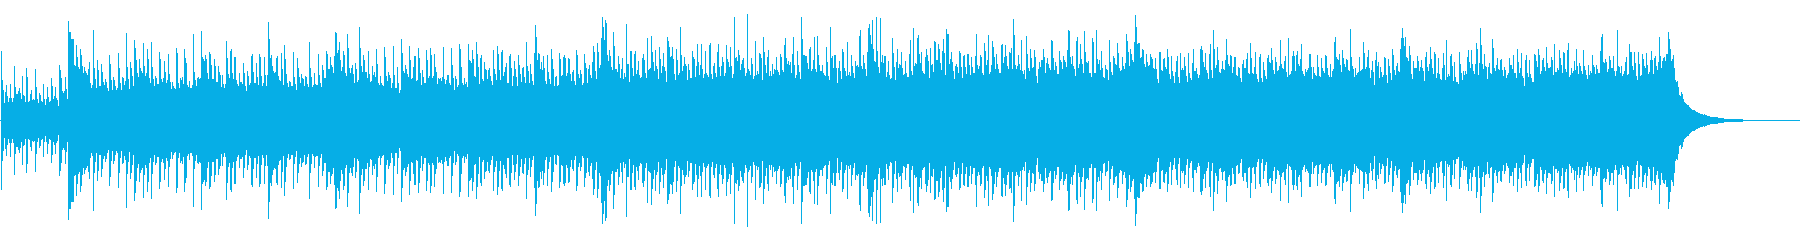 Refreshing and fashionable company VP company introduction 1 and a half minutes's reproduced waveform